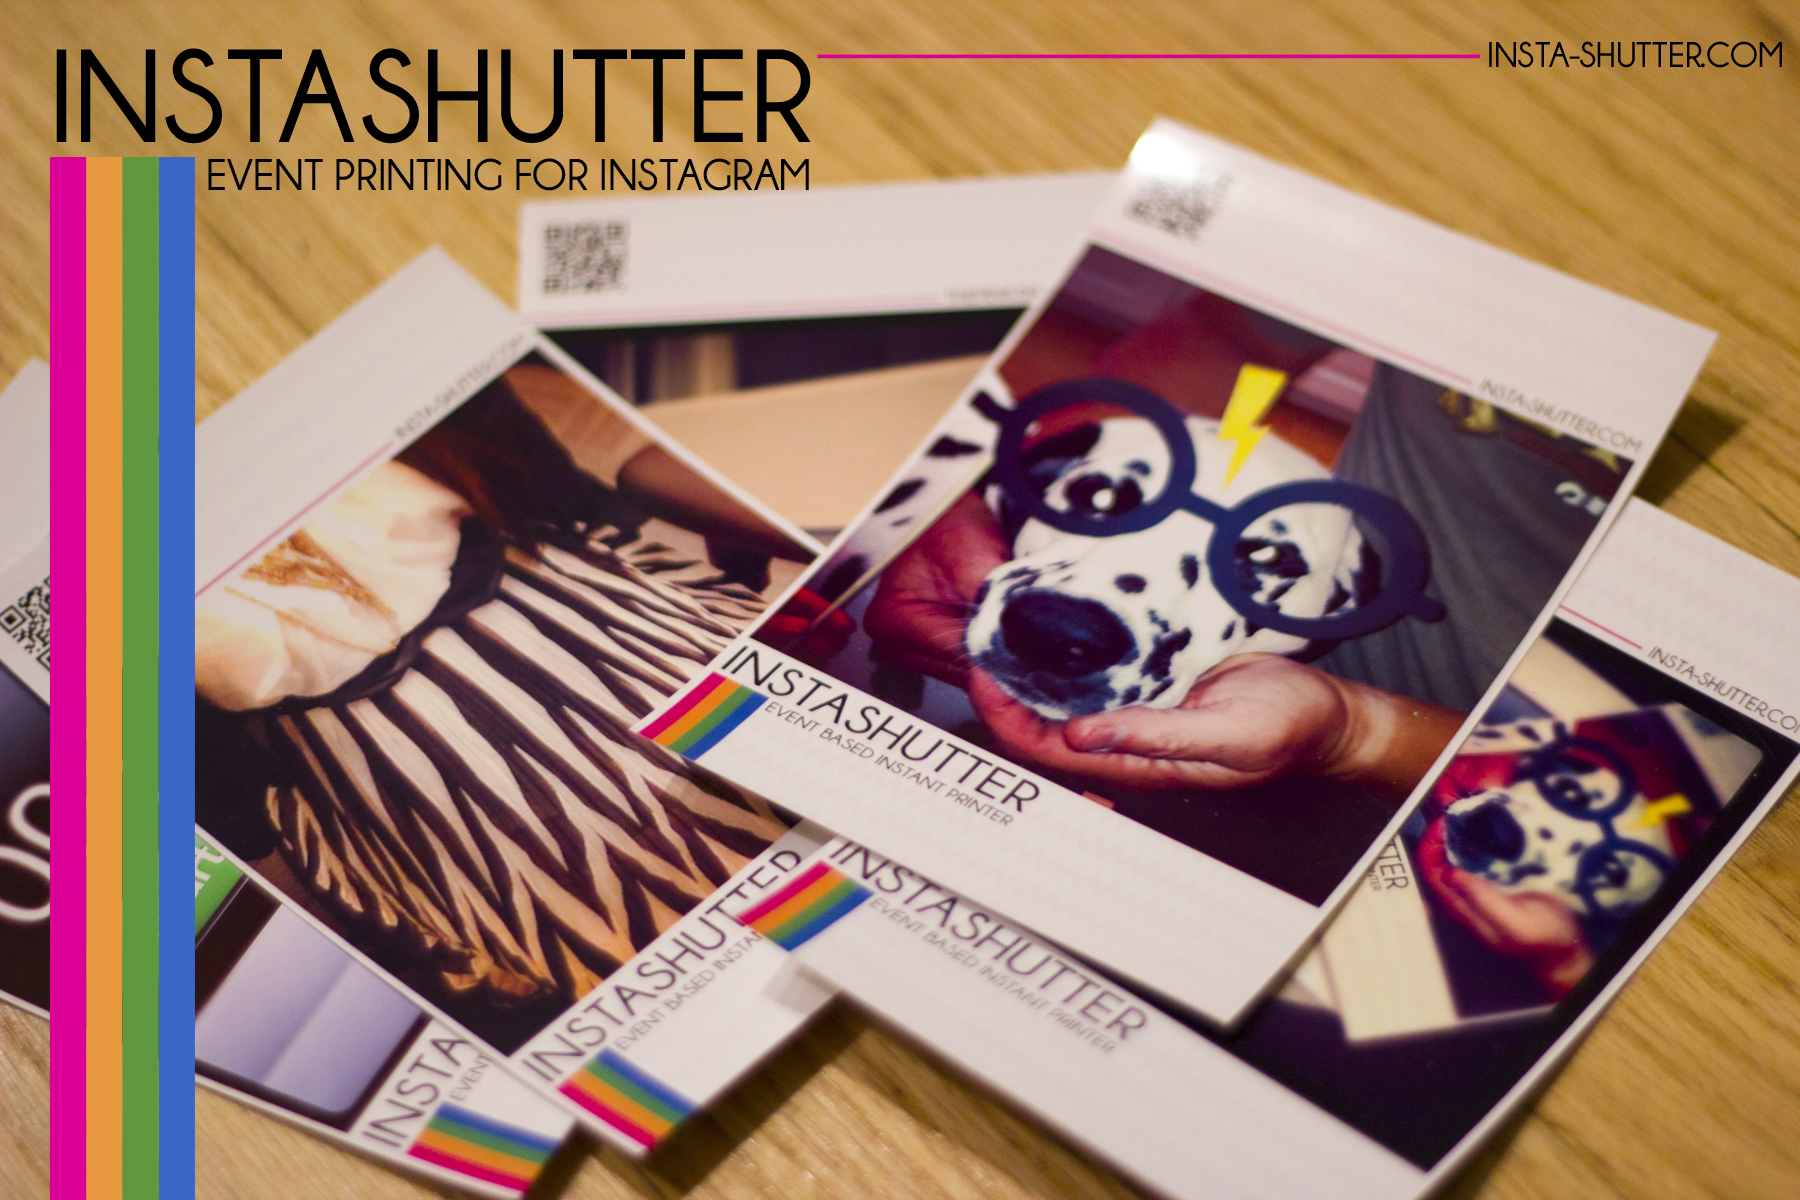 Insta-Shutter | Print Instagram Photos Instantly with Unique Hashtag